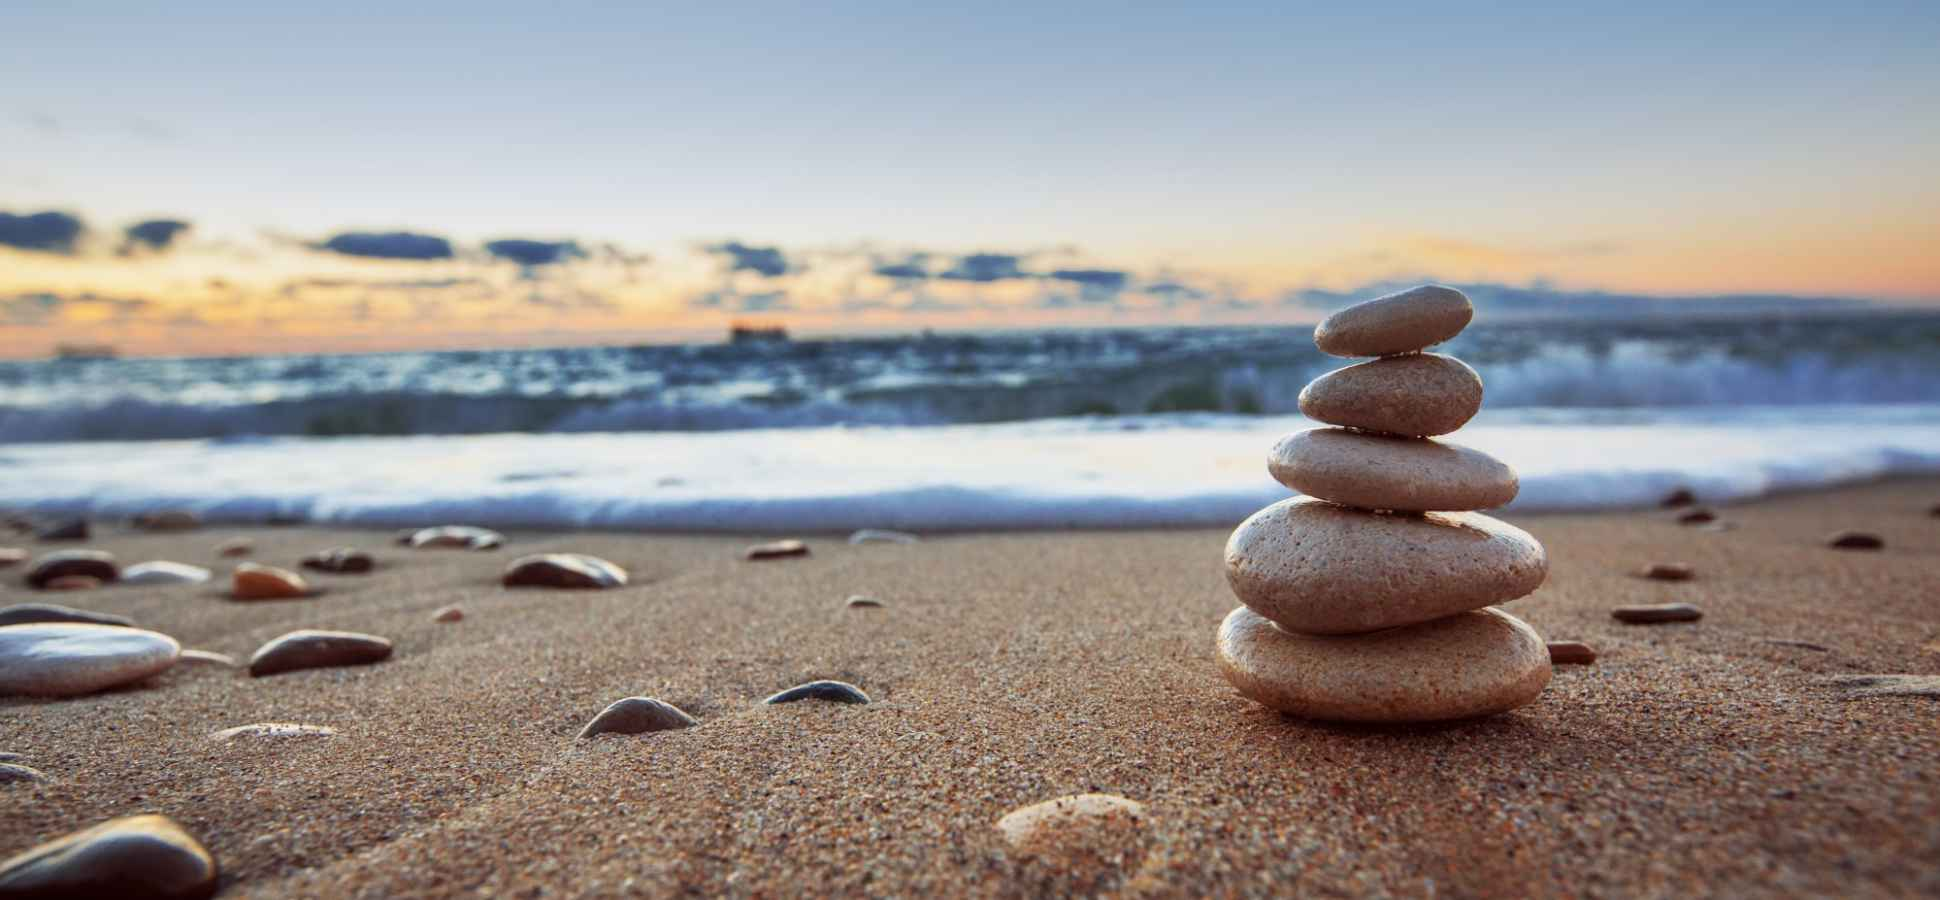 Want to Get More Out of Meditation? Learn to Separate From Your Thoughts